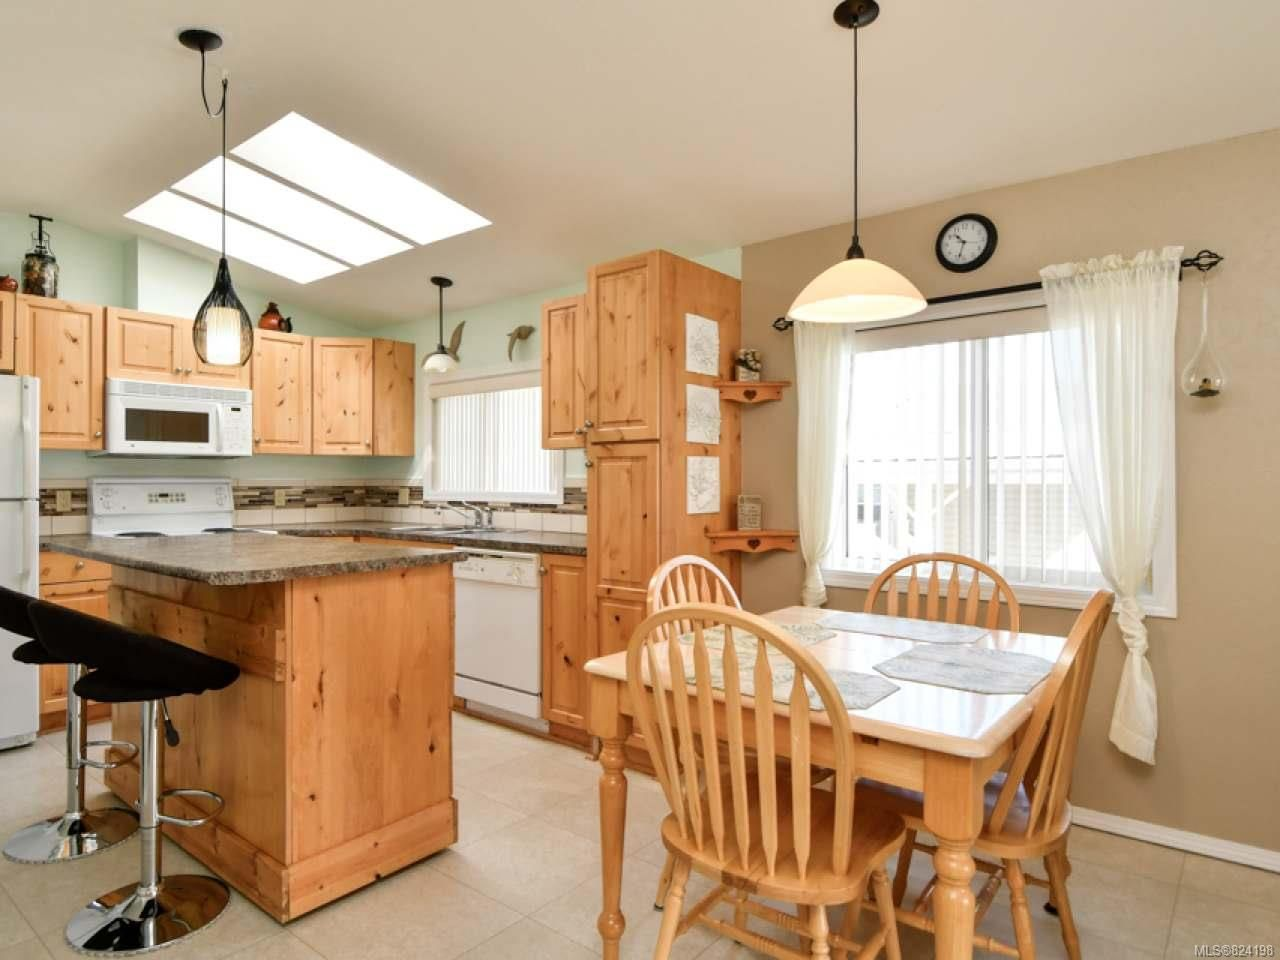 Photo 4: Photos: 38 951 Homewood Rd in CAMPBELL RIVER: CR Campbell River Central Manufactured Home for sale (Campbell River)  : MLS®# 824198